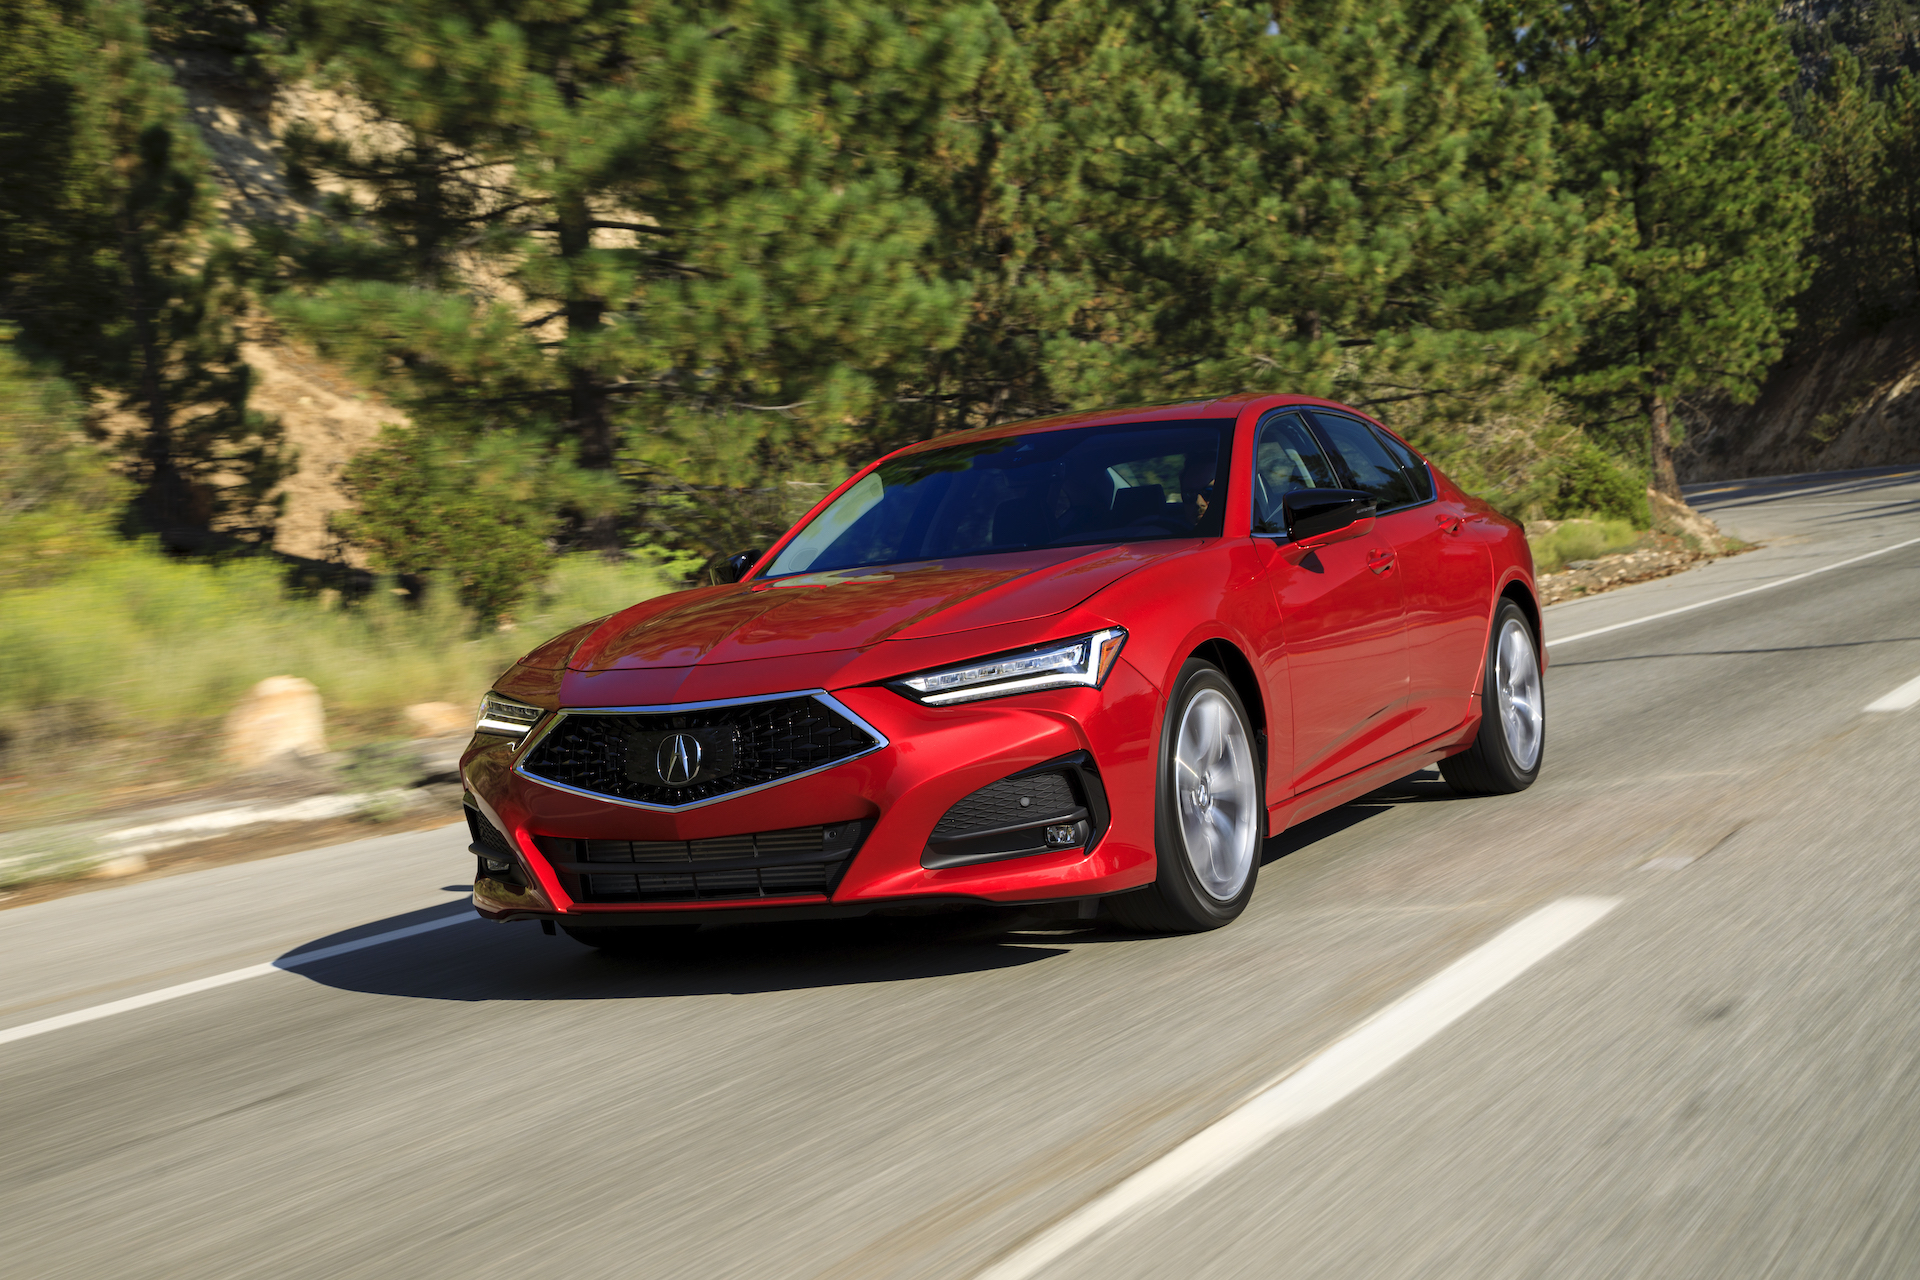 Acura TLX: Best Car To Buy 2021 Nominee